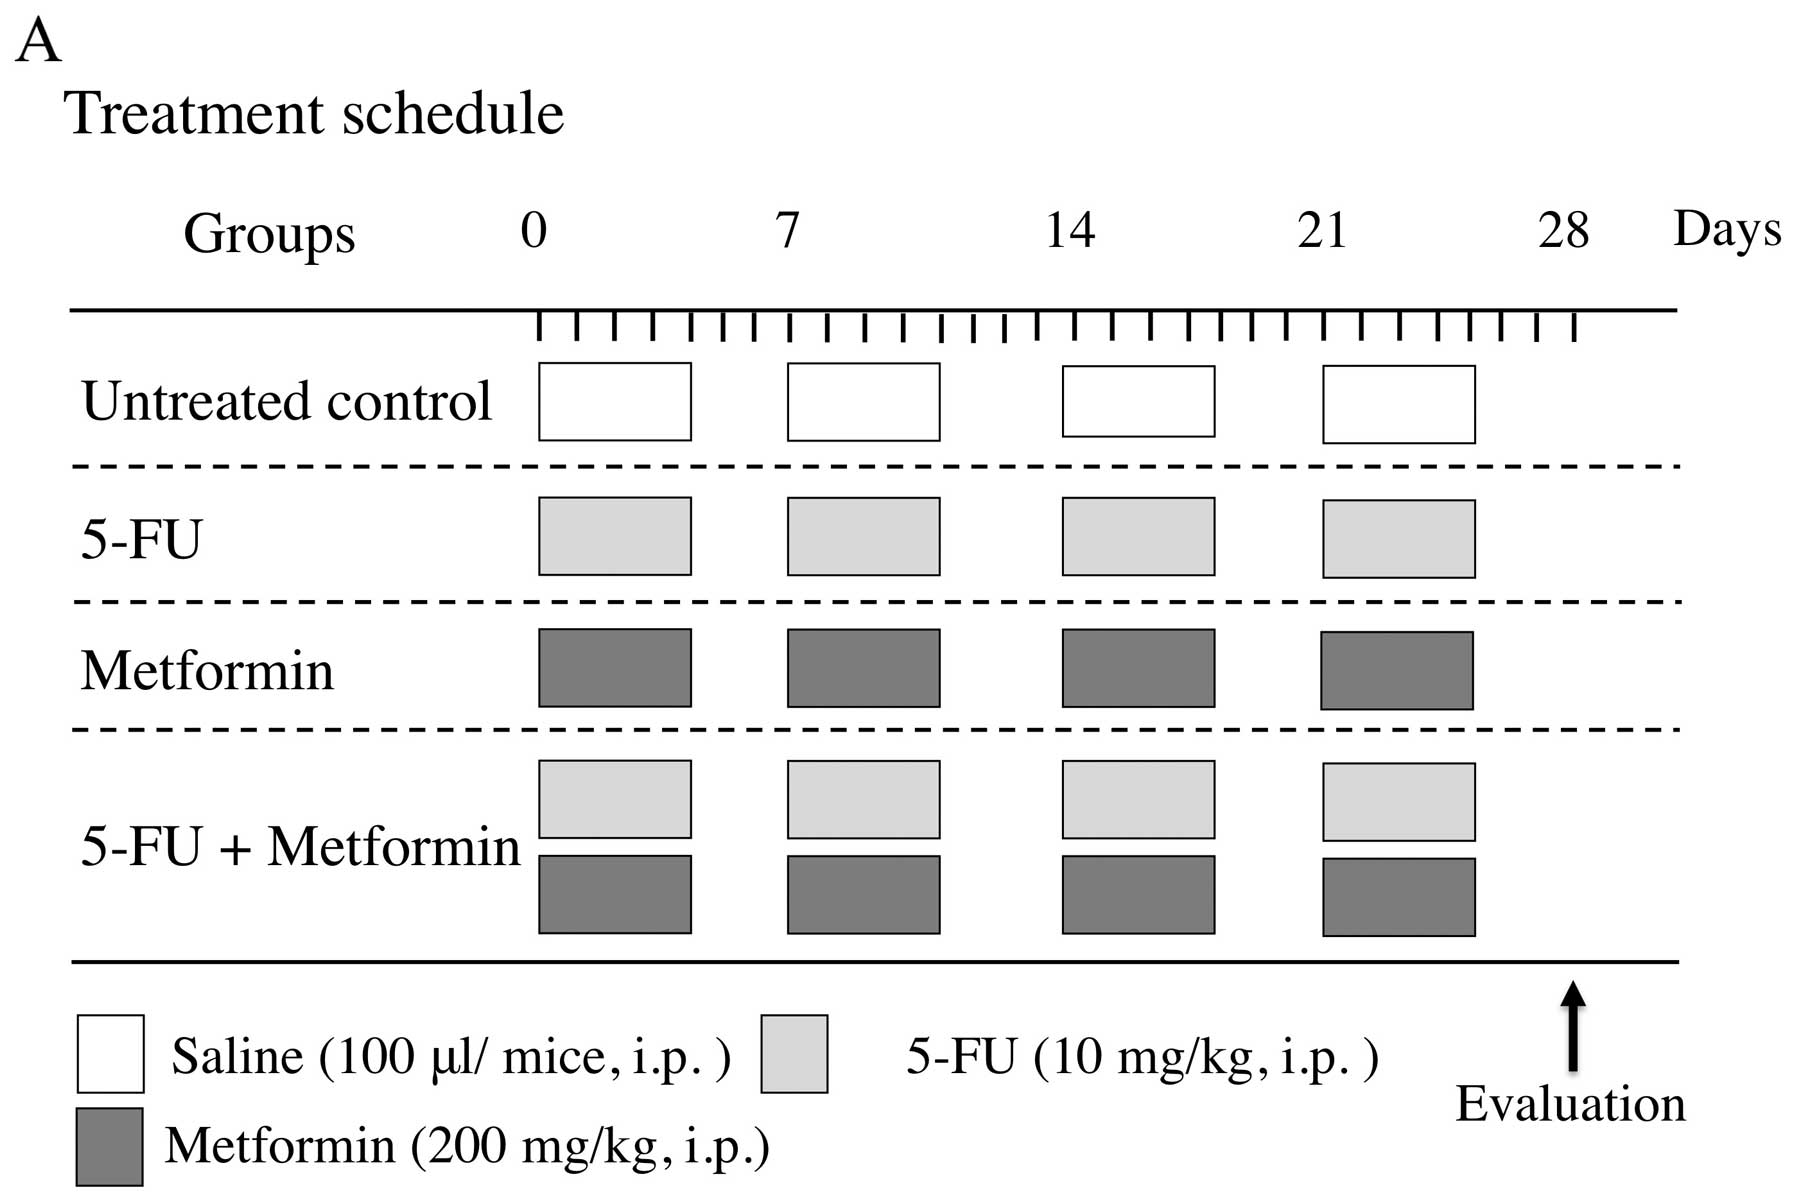 Metformin In Combination With 5 Fluorouracil Suppresses Tumor Growth By Inhibiting The Warburg Effect In Human Oral Squamous Cell Carcinoma